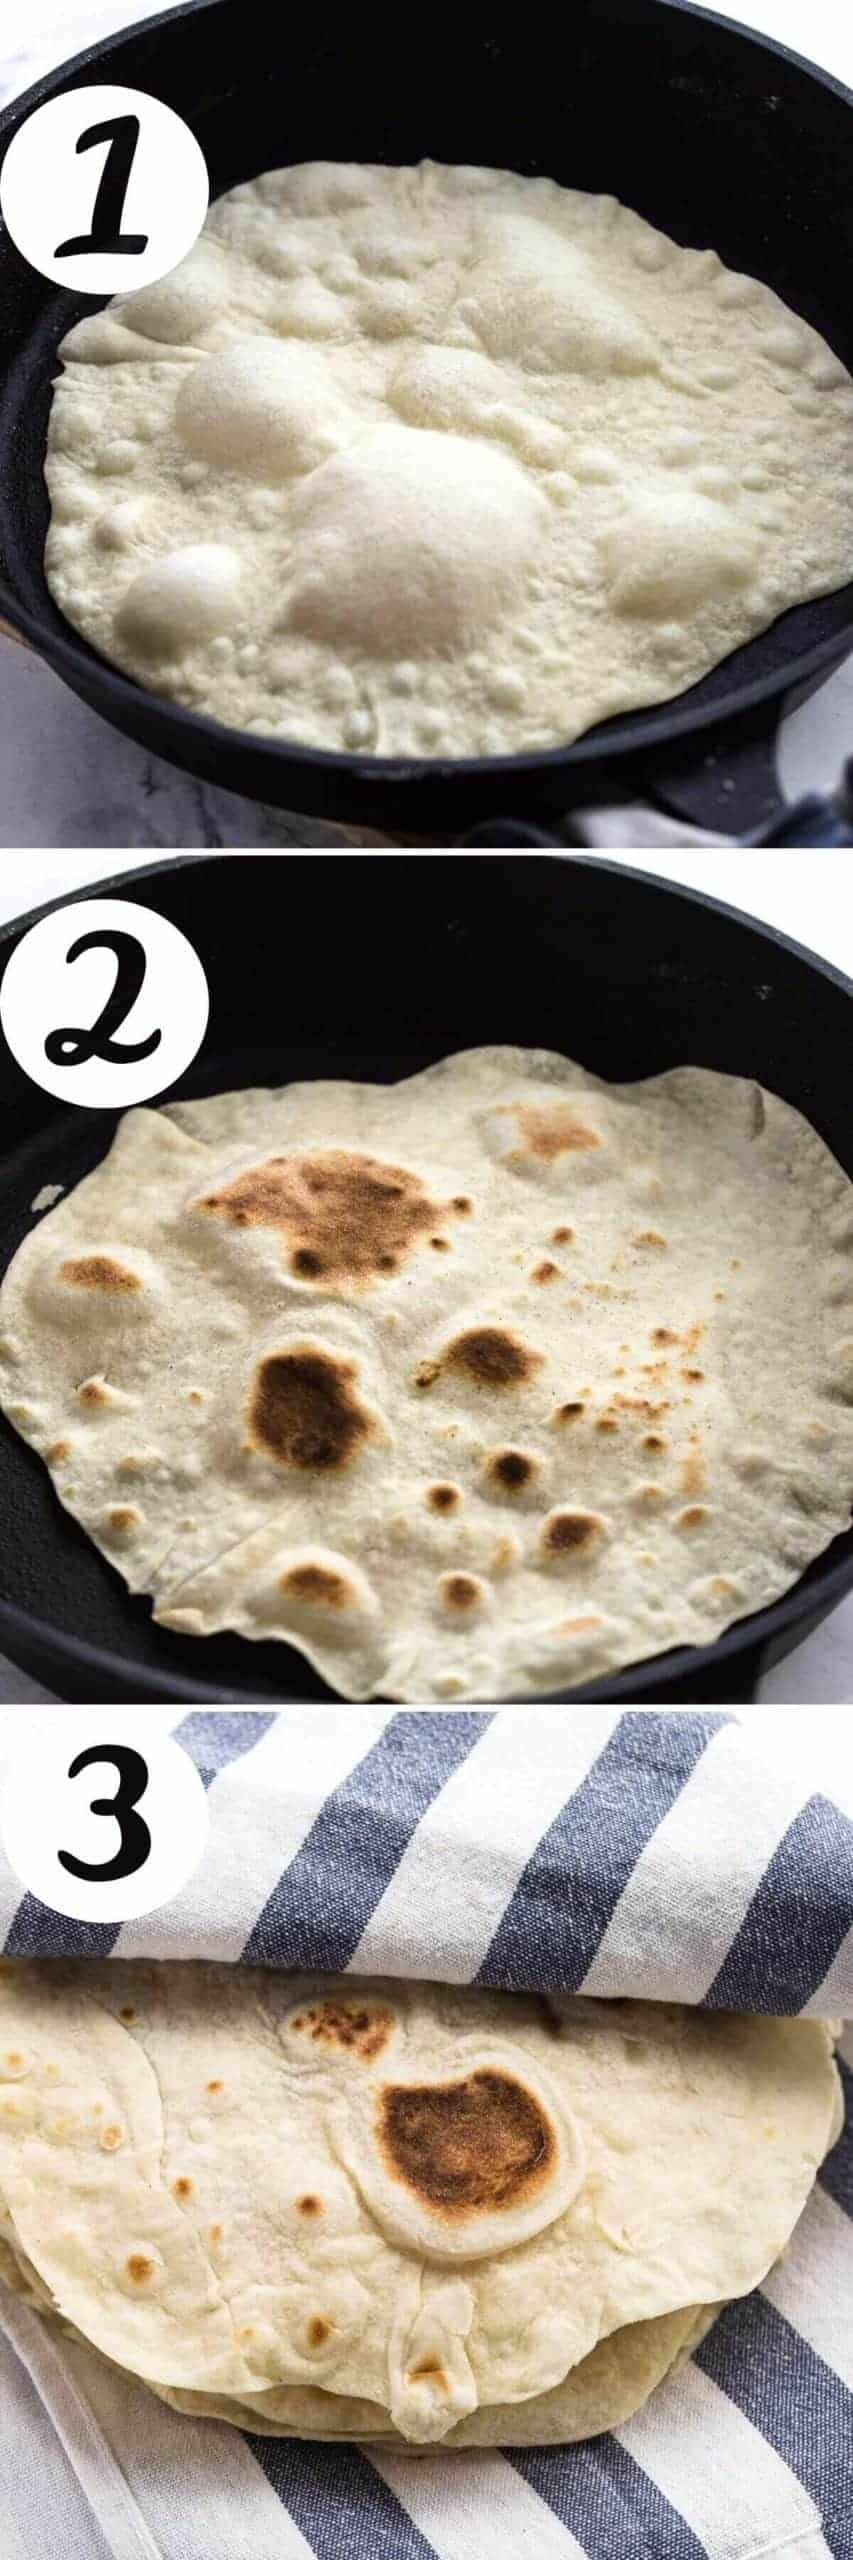 cooking flour tortillas in a skillet and keeping warm under kitchen towel